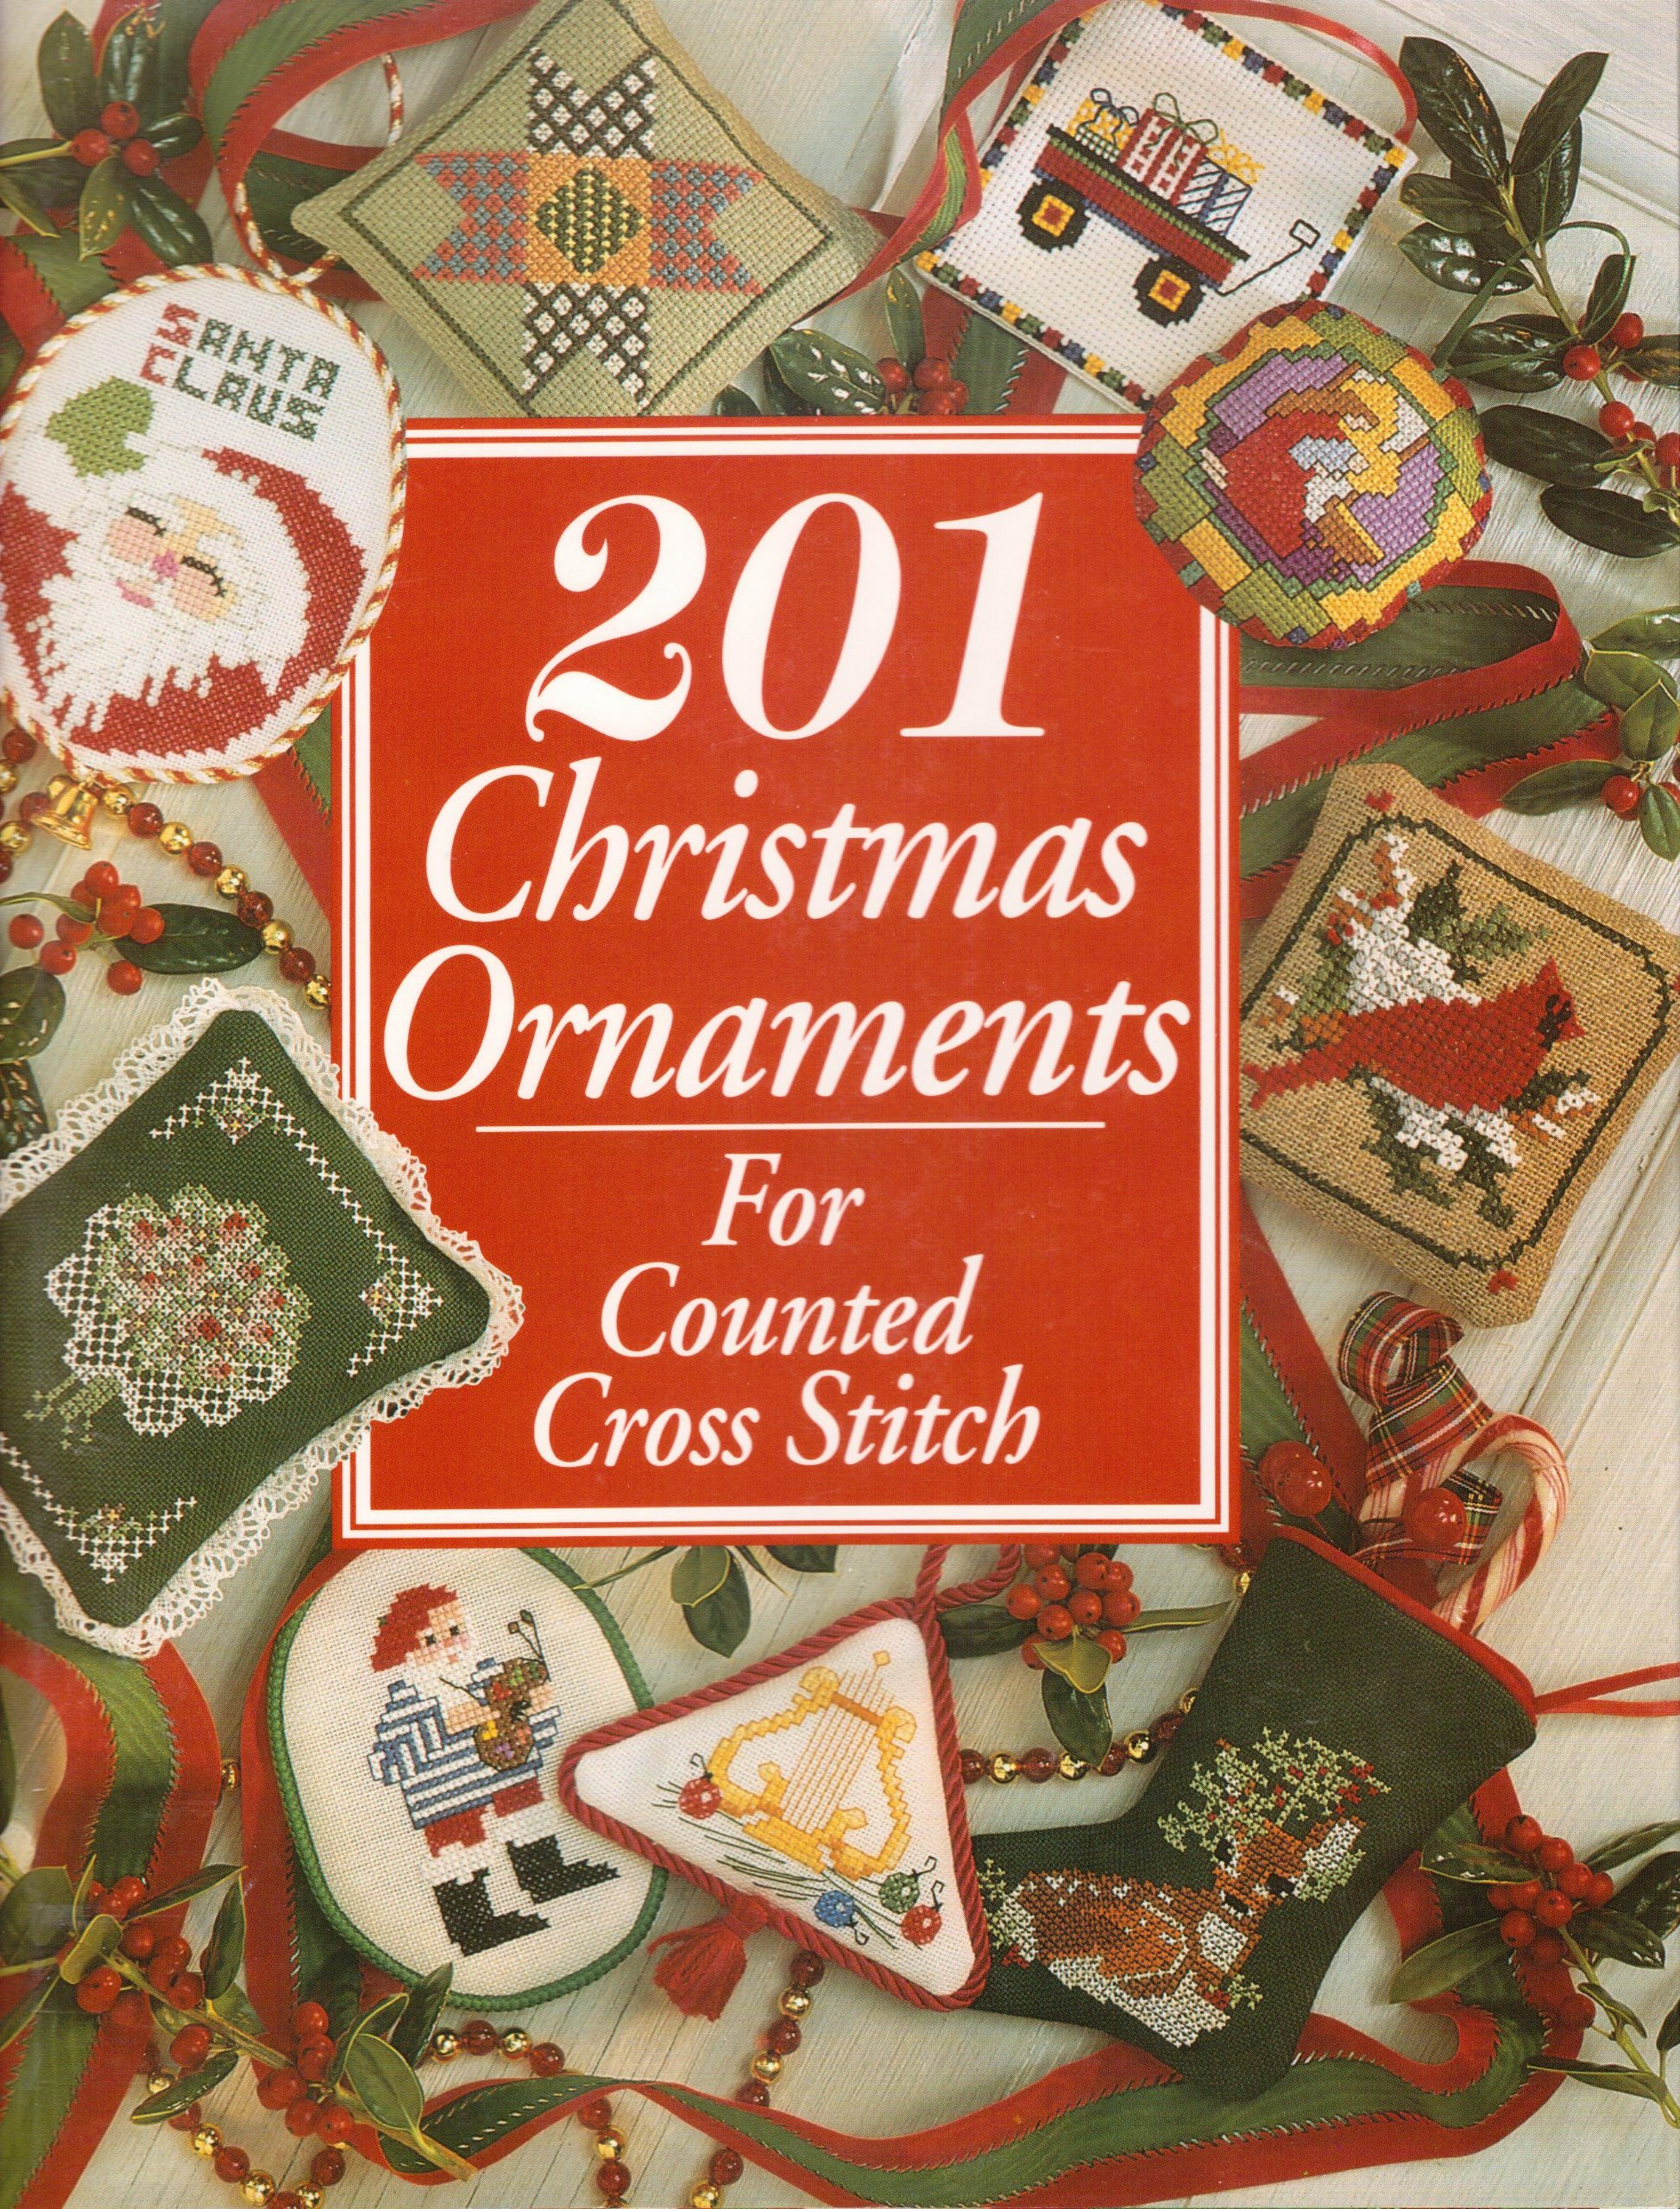 201 christmas ornaments for counted cross stitch just crossstitch phyllis hoffman 9780932437013 amazoncom books